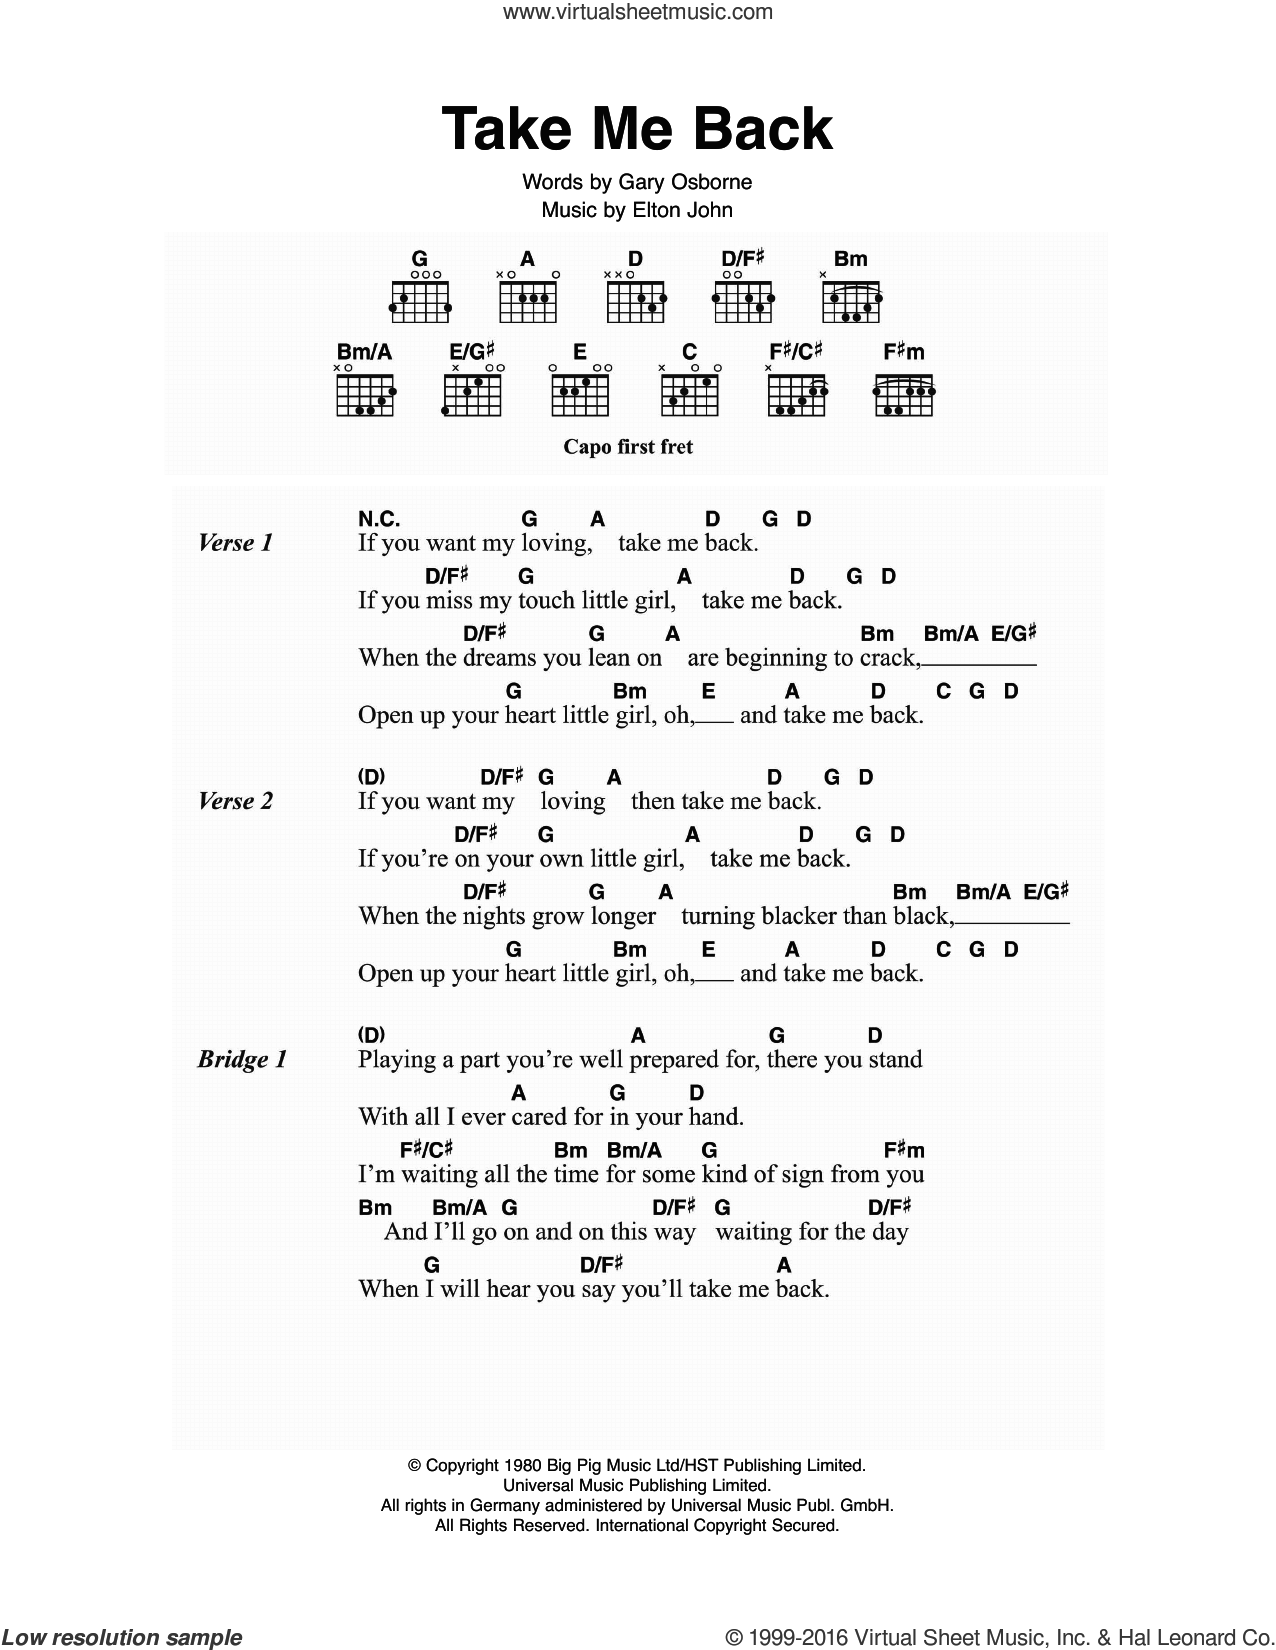 Take Me Back sheet music for guitar (chords) by Elton John, intermediate guitar (chords). Score Image Preview.